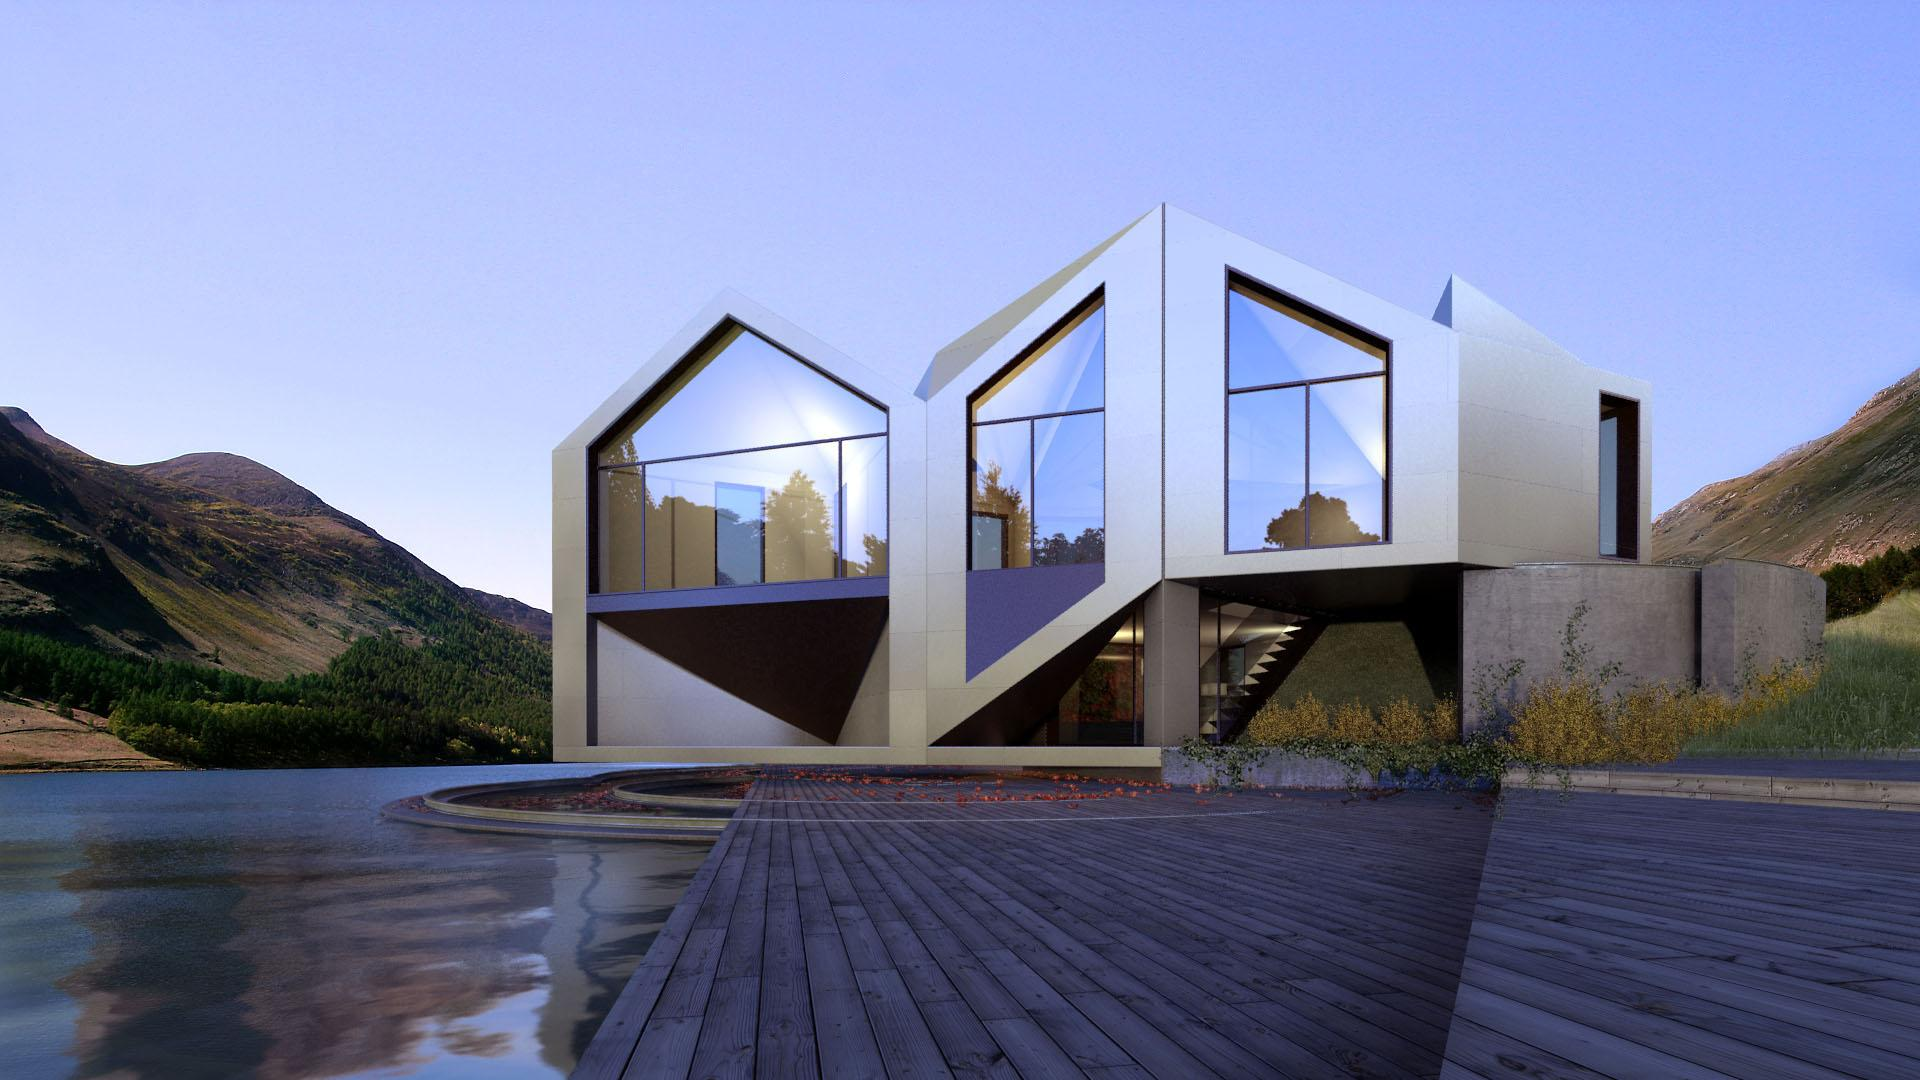 Sliding, Unfolding And Rotating Houses That Perfectly Adapt To Their ...